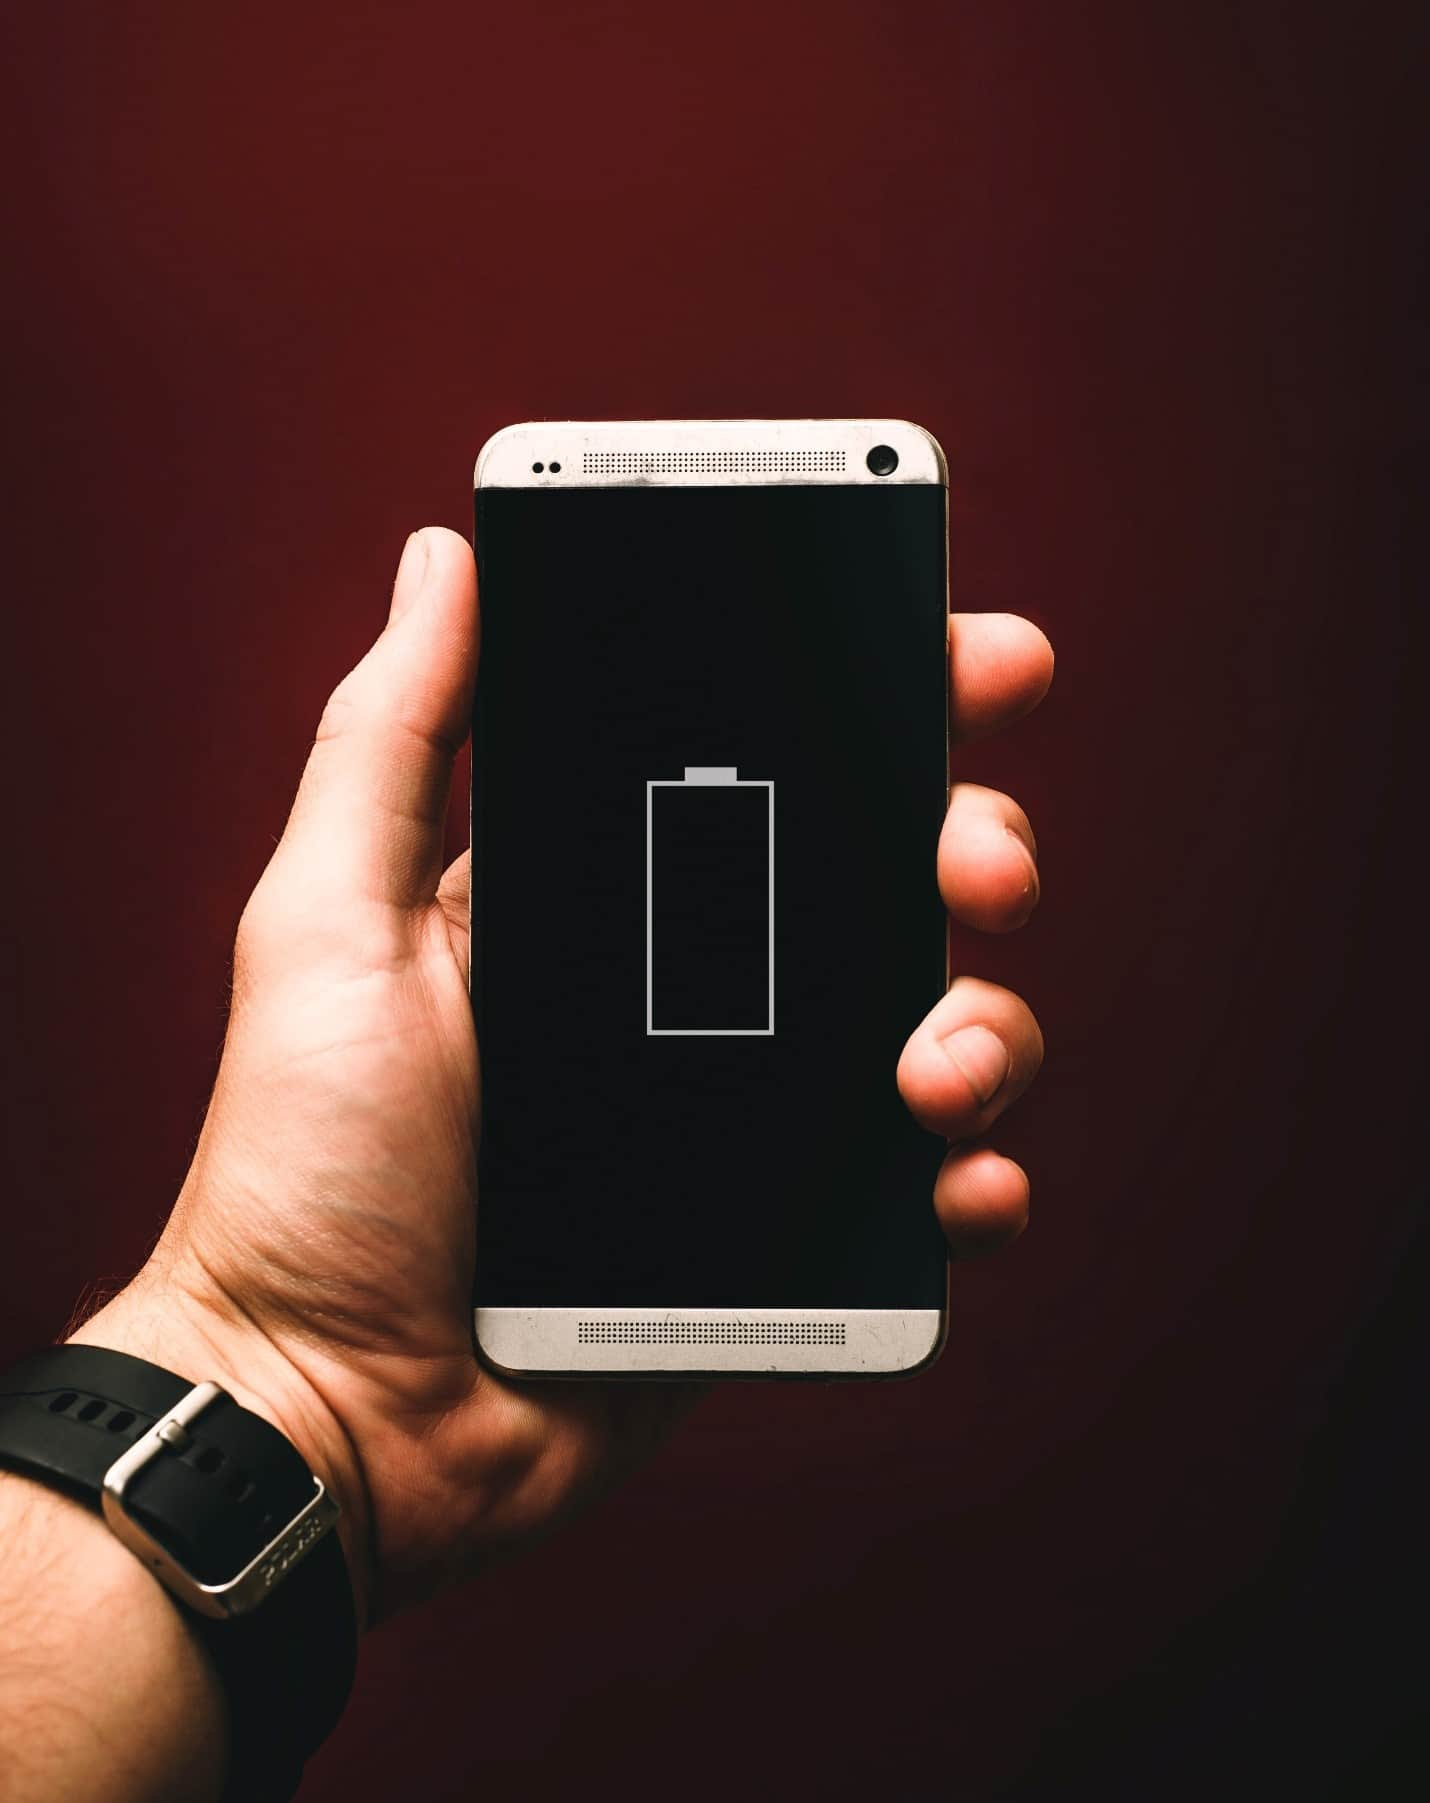 content/fr-fr/images/repository/isc/2020/9910/prolong-your-smartphone-battery-lifespan-1.jpg